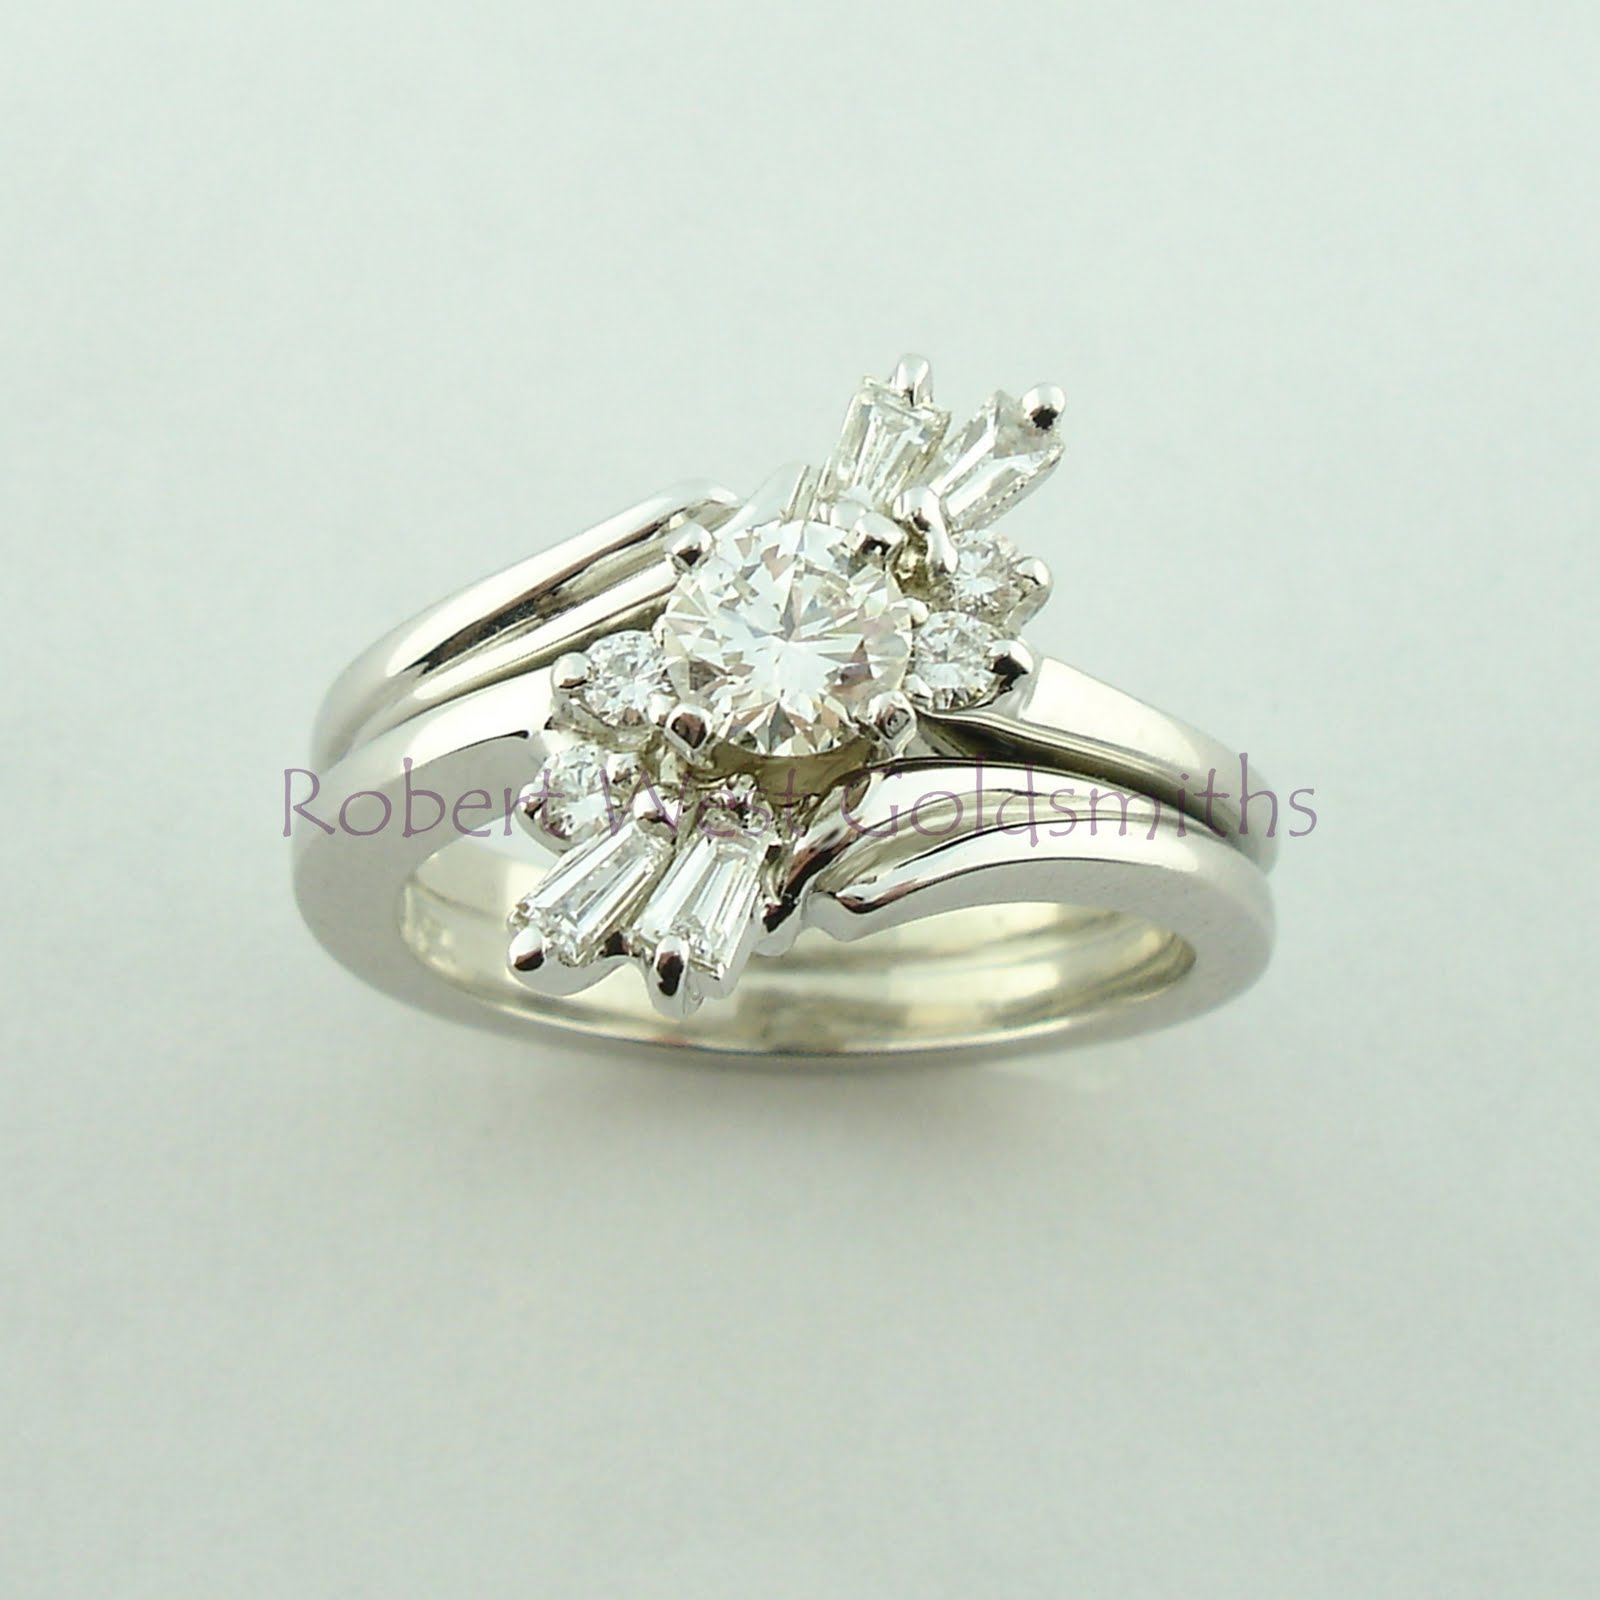 Are Yellow Gold Engagement Rings Tacky